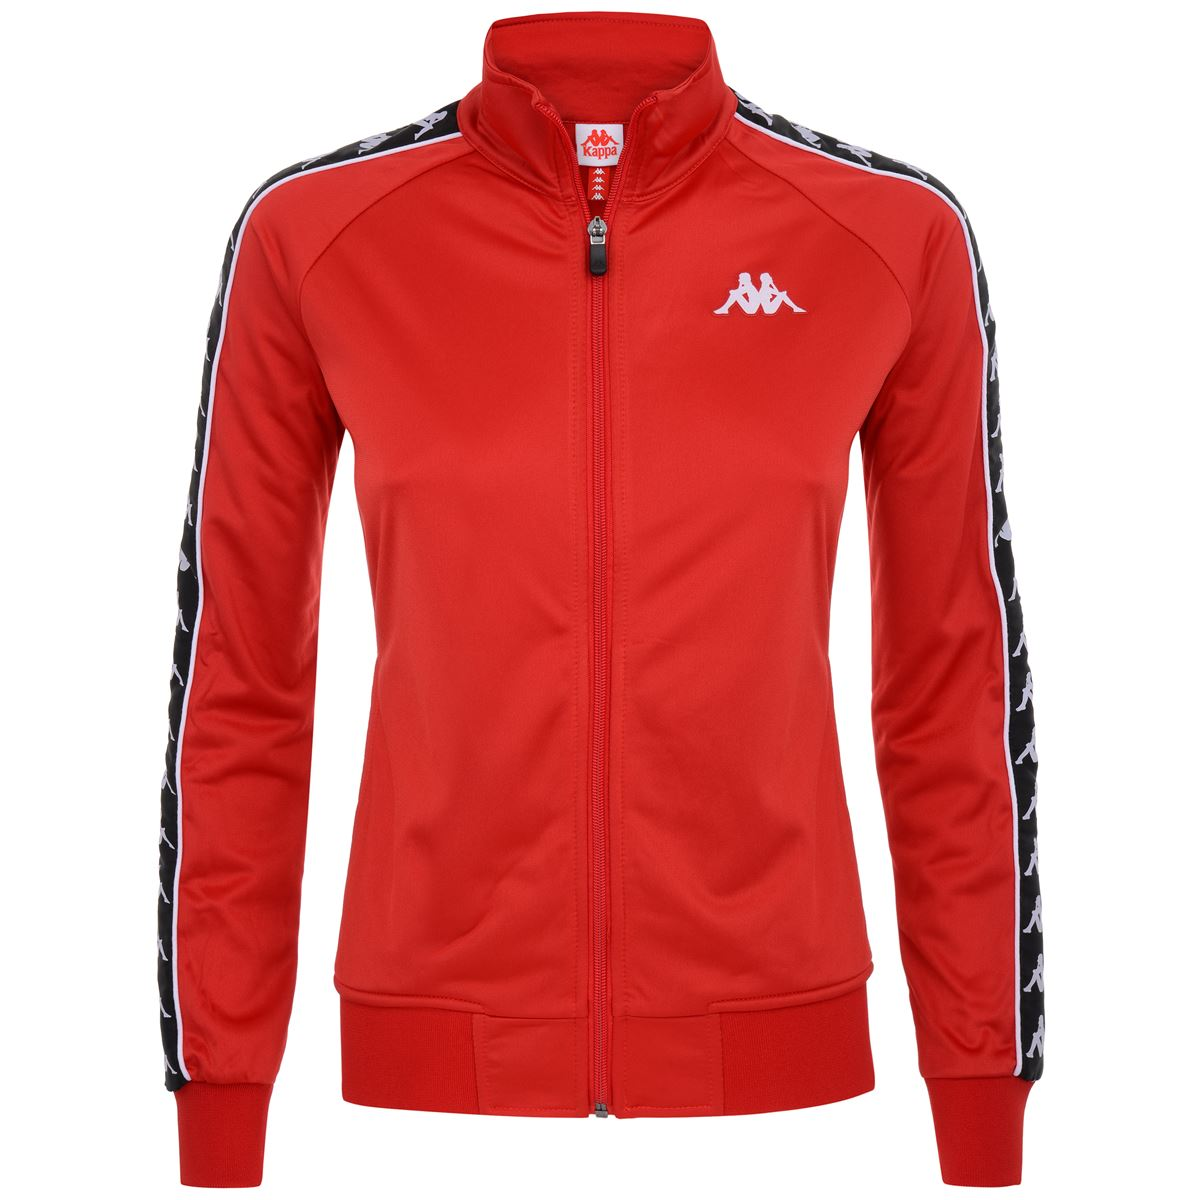 Kappa |  | 301PSC0A31 RED-BLACK